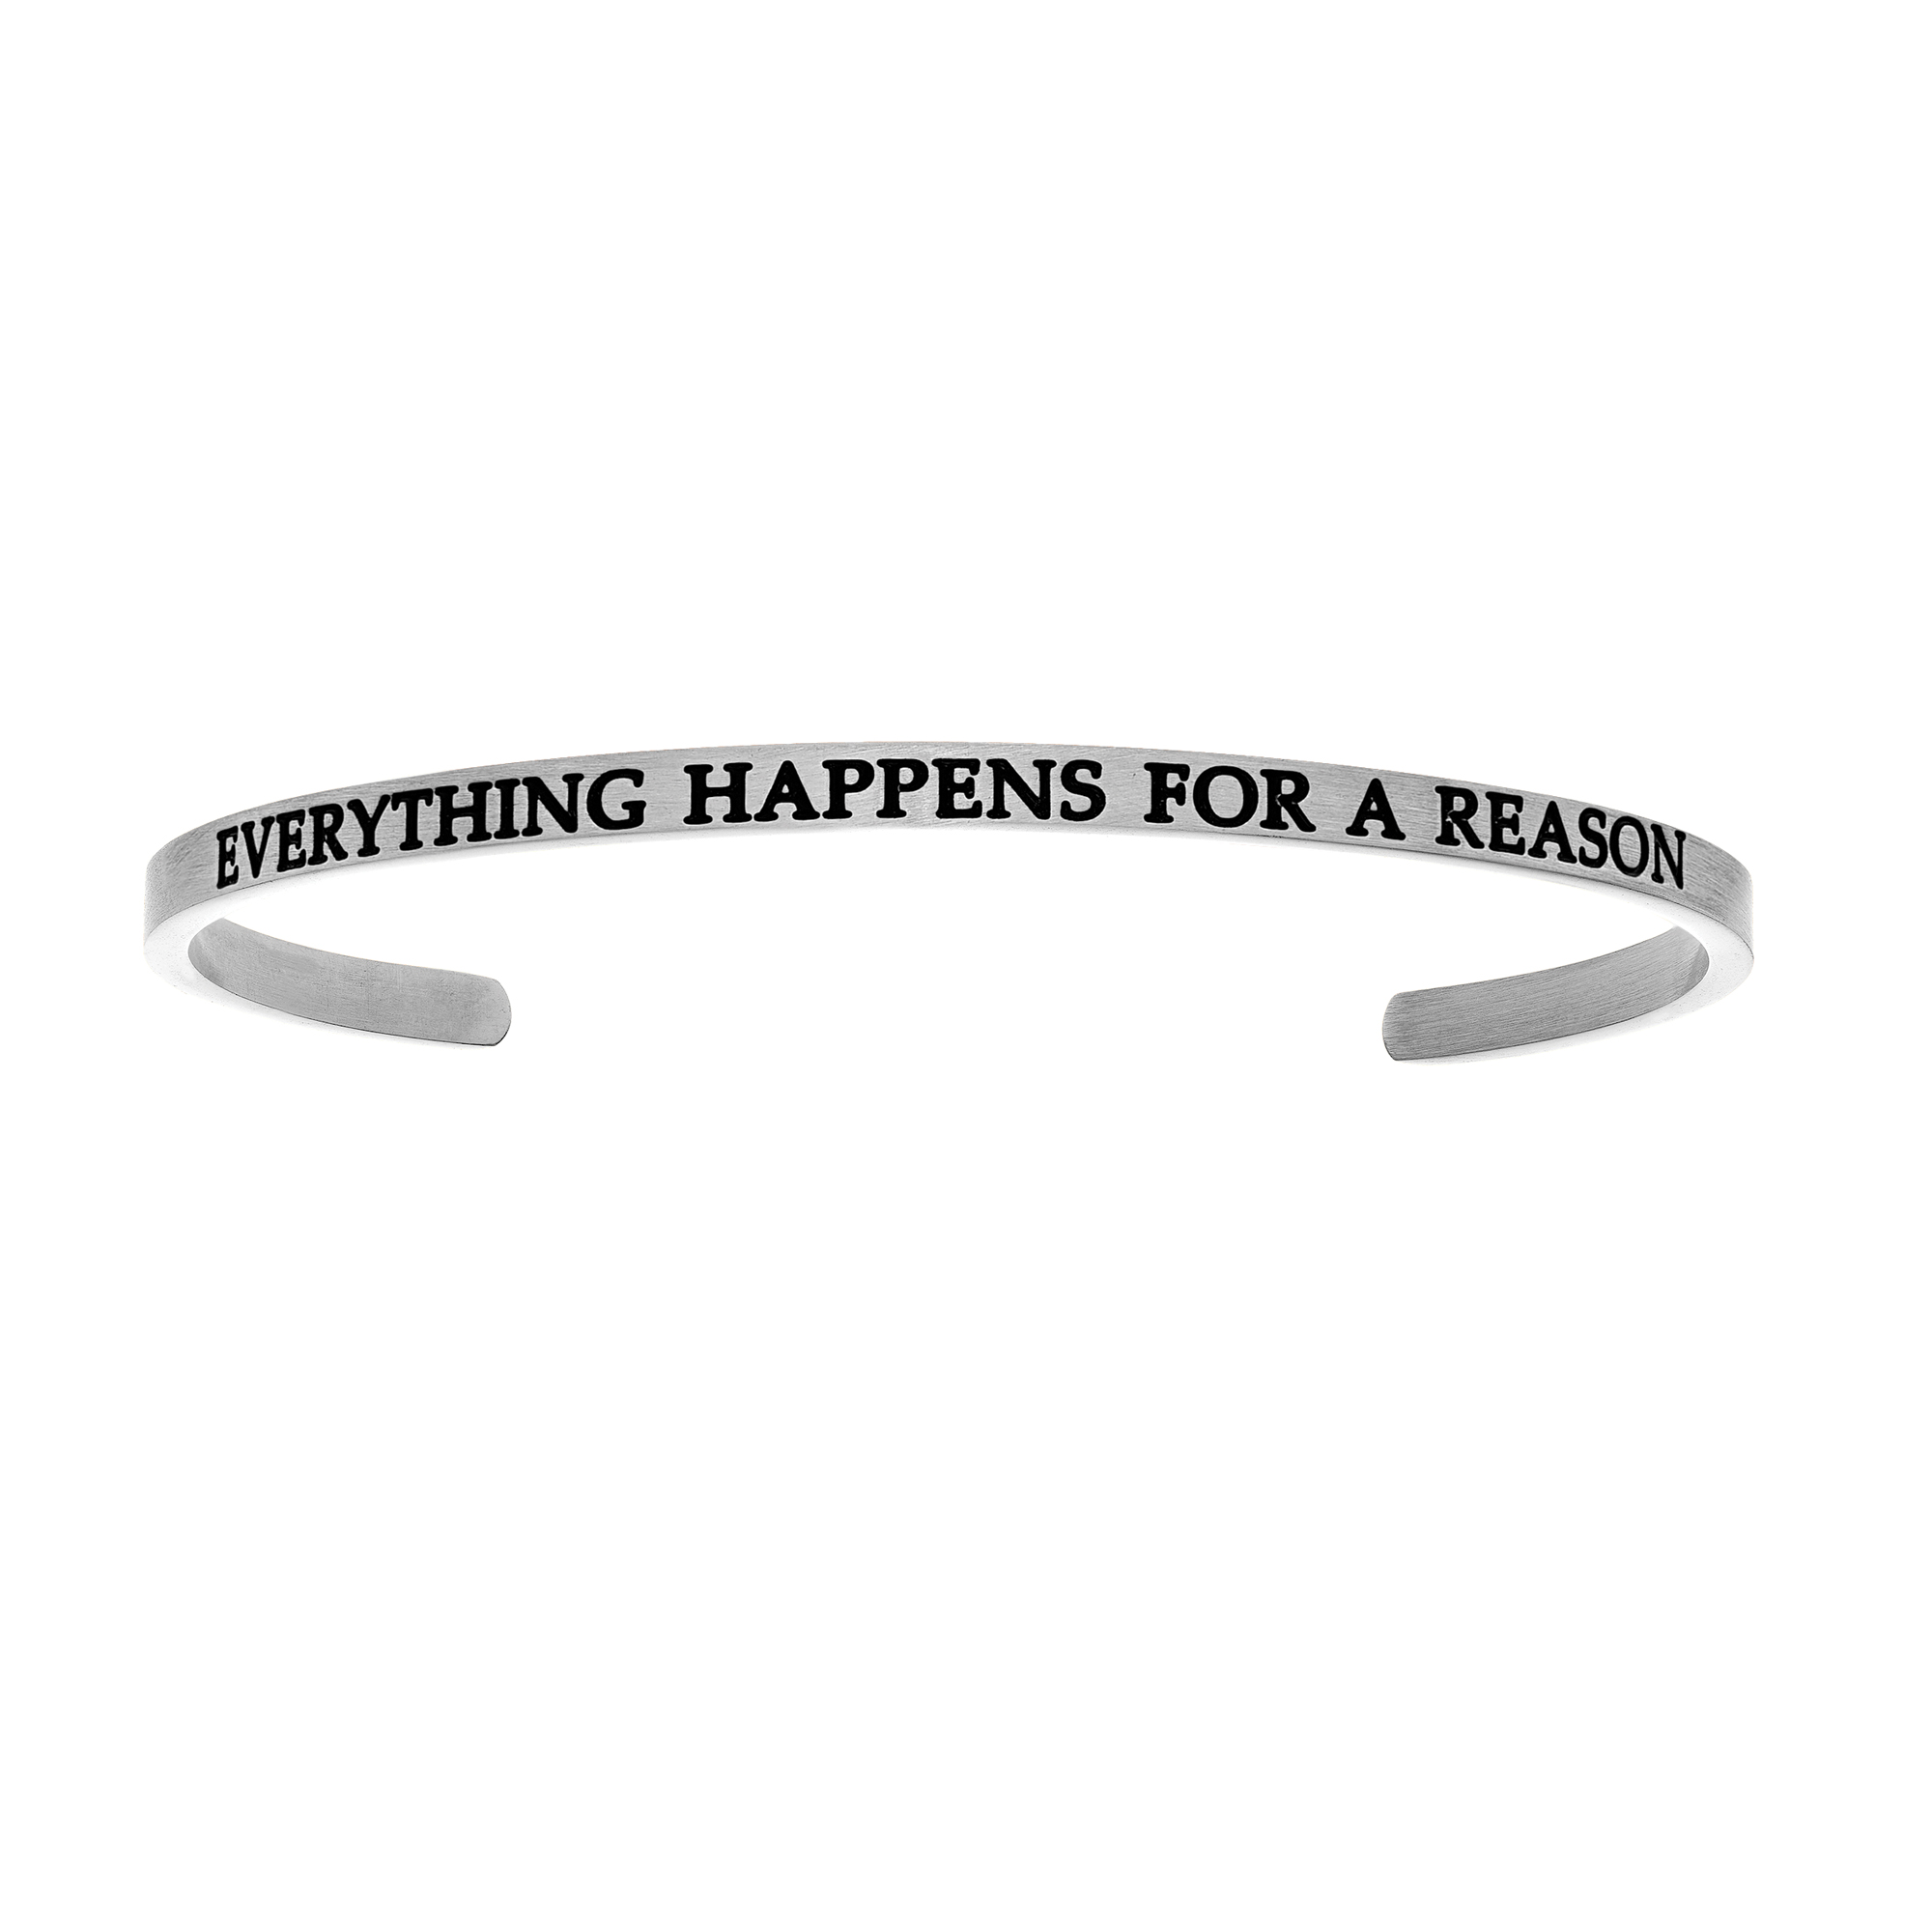 Intuitions Stainless Steel EVERYTHING HAPPENS FOR A REASON Diamond Accent Cuff  Bangle Bracelet, 7  Each of these bracelets carries a personal message of inspiration, spirituality or just plain fun. Meant to be worn alone or stacked together for a smart, contemporary look, they're a great self-purchase or as a gift for family or friends. Intuitions are made of stainless steel and come in two styles standard cuff or friendship and fit practically any wrist. Intuitions Jewelry makes the difference in your daily life by designing and creating bracelets and bangles with motivational quotes to inspire you and your loved ones. Giving back $.25 of each bracelet to BABY2BABY